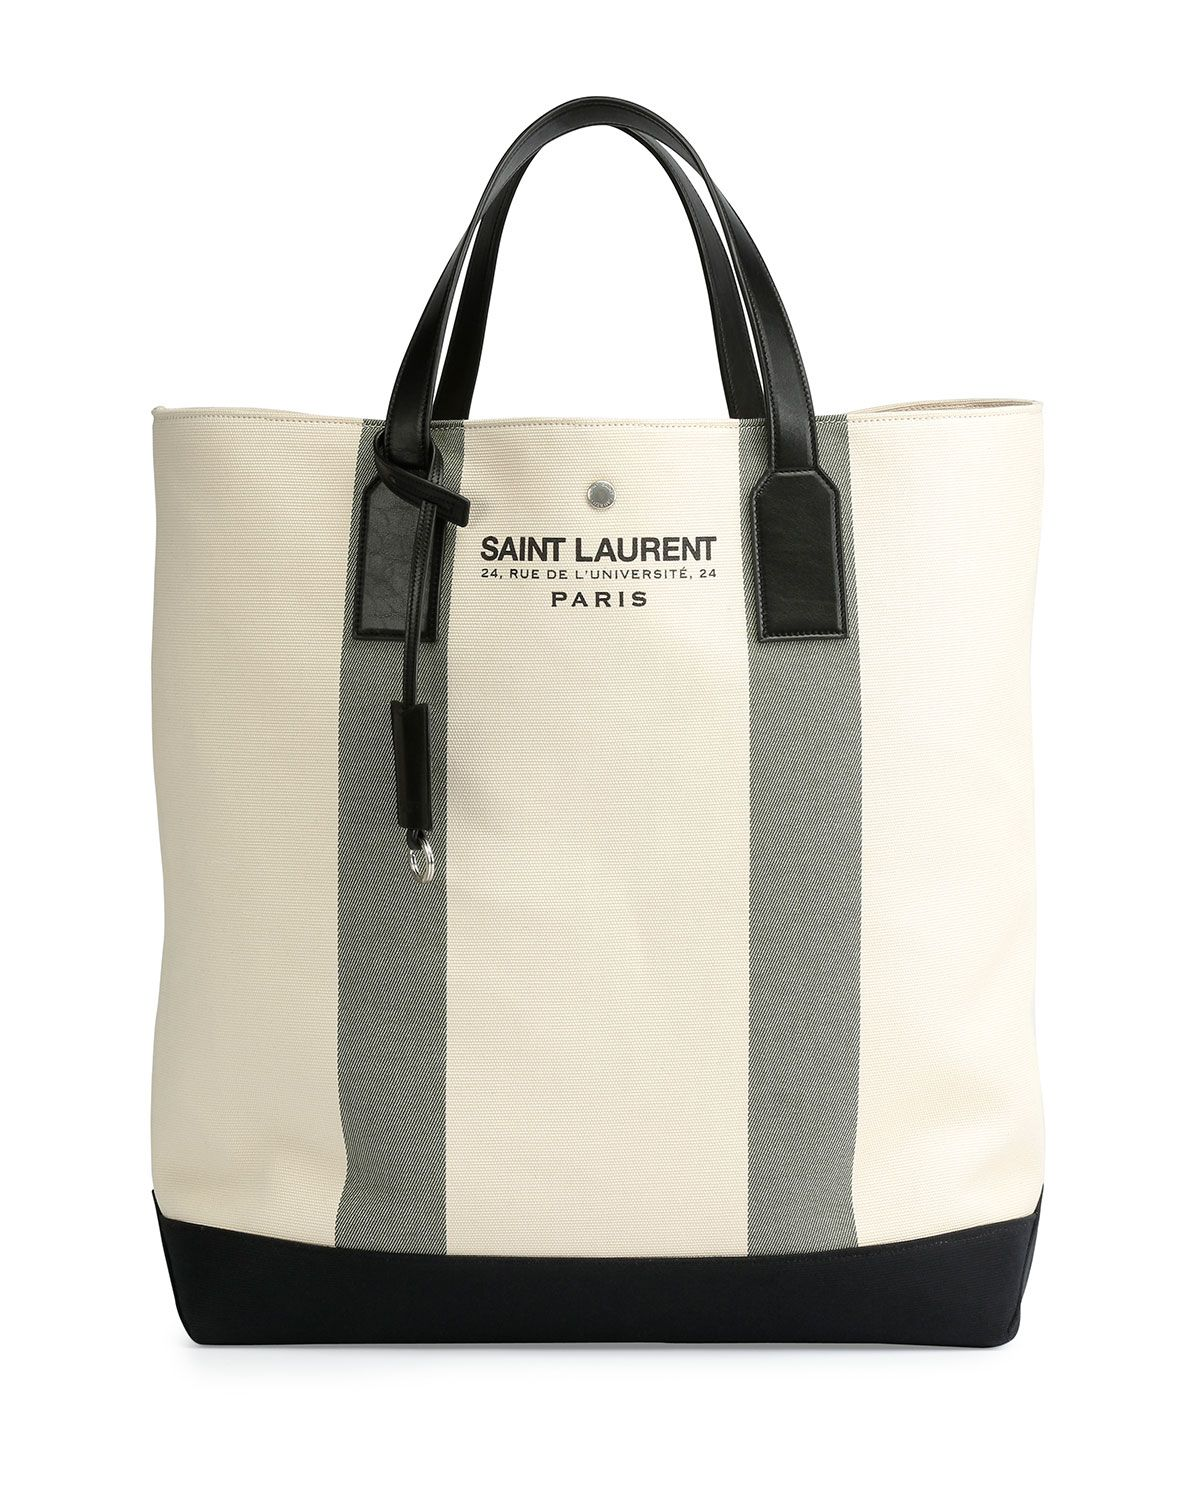 cc57b9d86 Yves Saint Laurent Logo Print Beach Tote Bag, Cream (Ivory), Men's ...